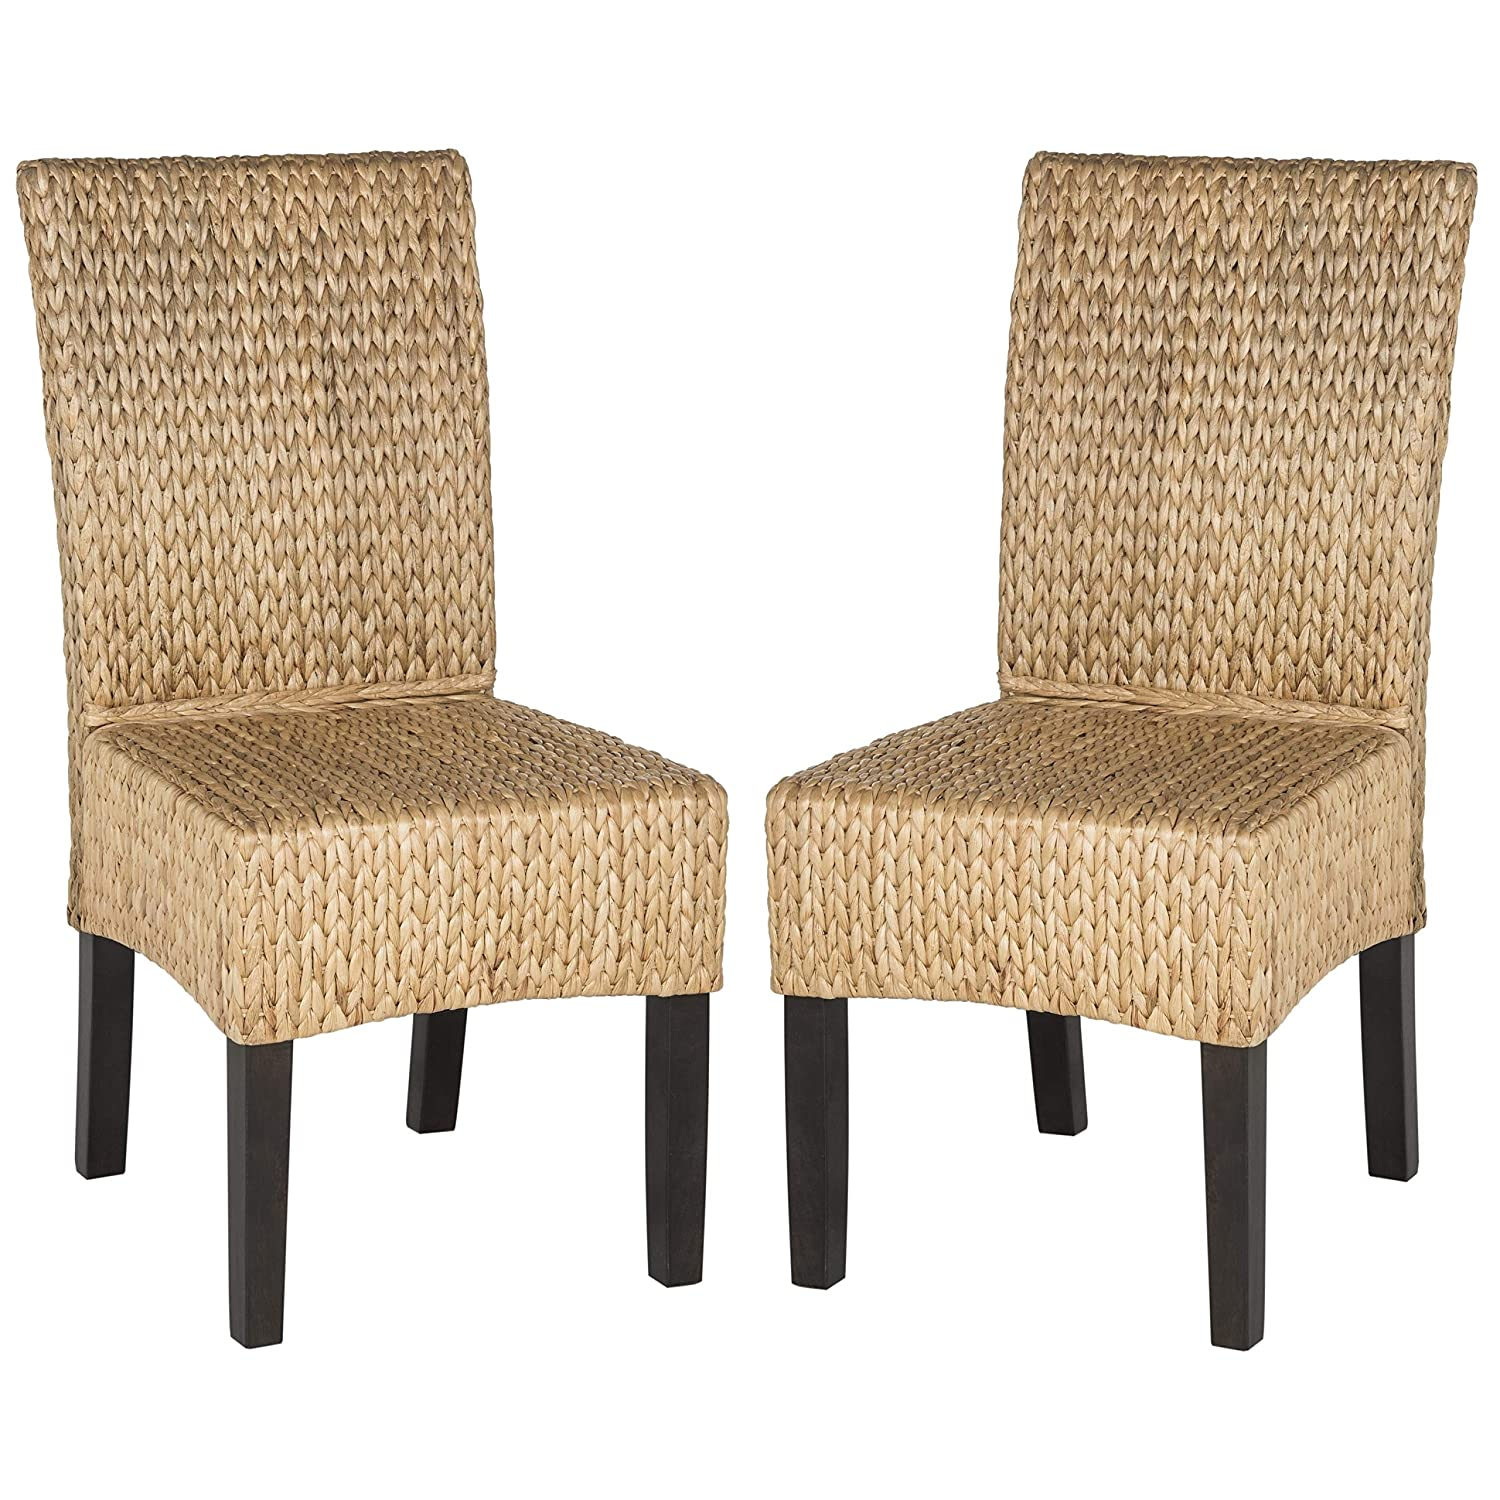 Safavieh Home Collection Luz Natural Wicker Dining Chair Set of 2 , 18 , Brown